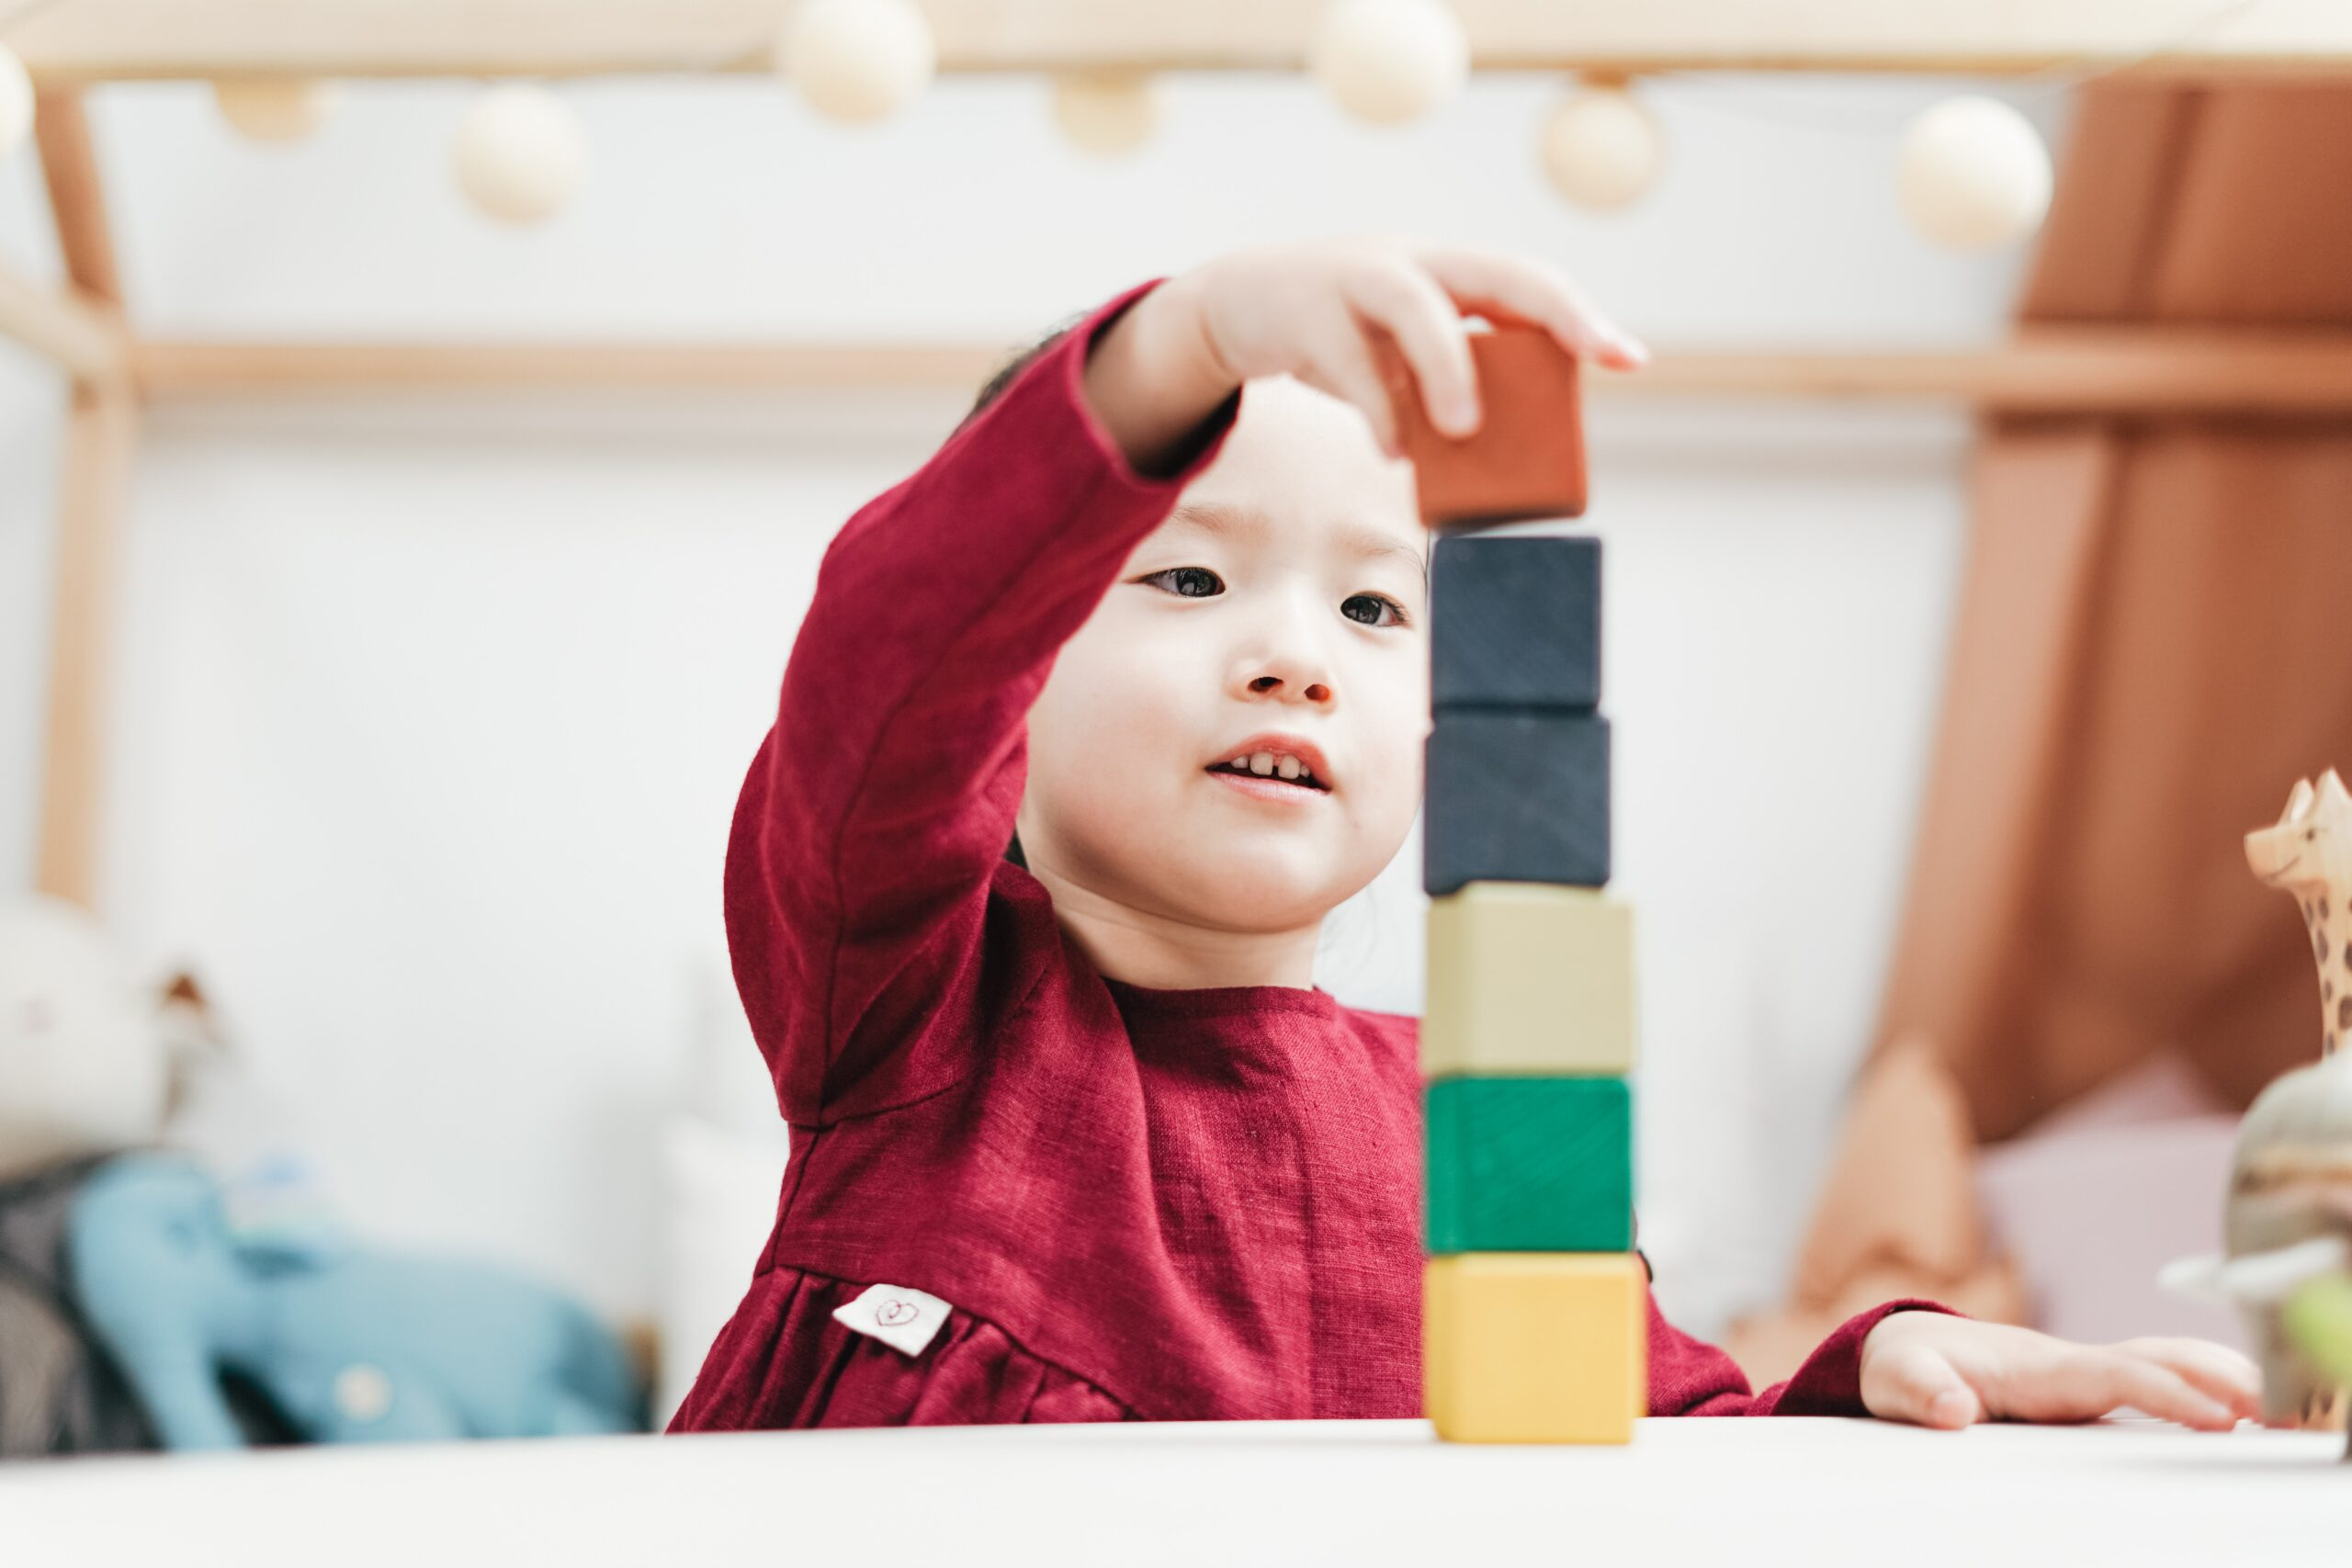 Young boy playing with block toys